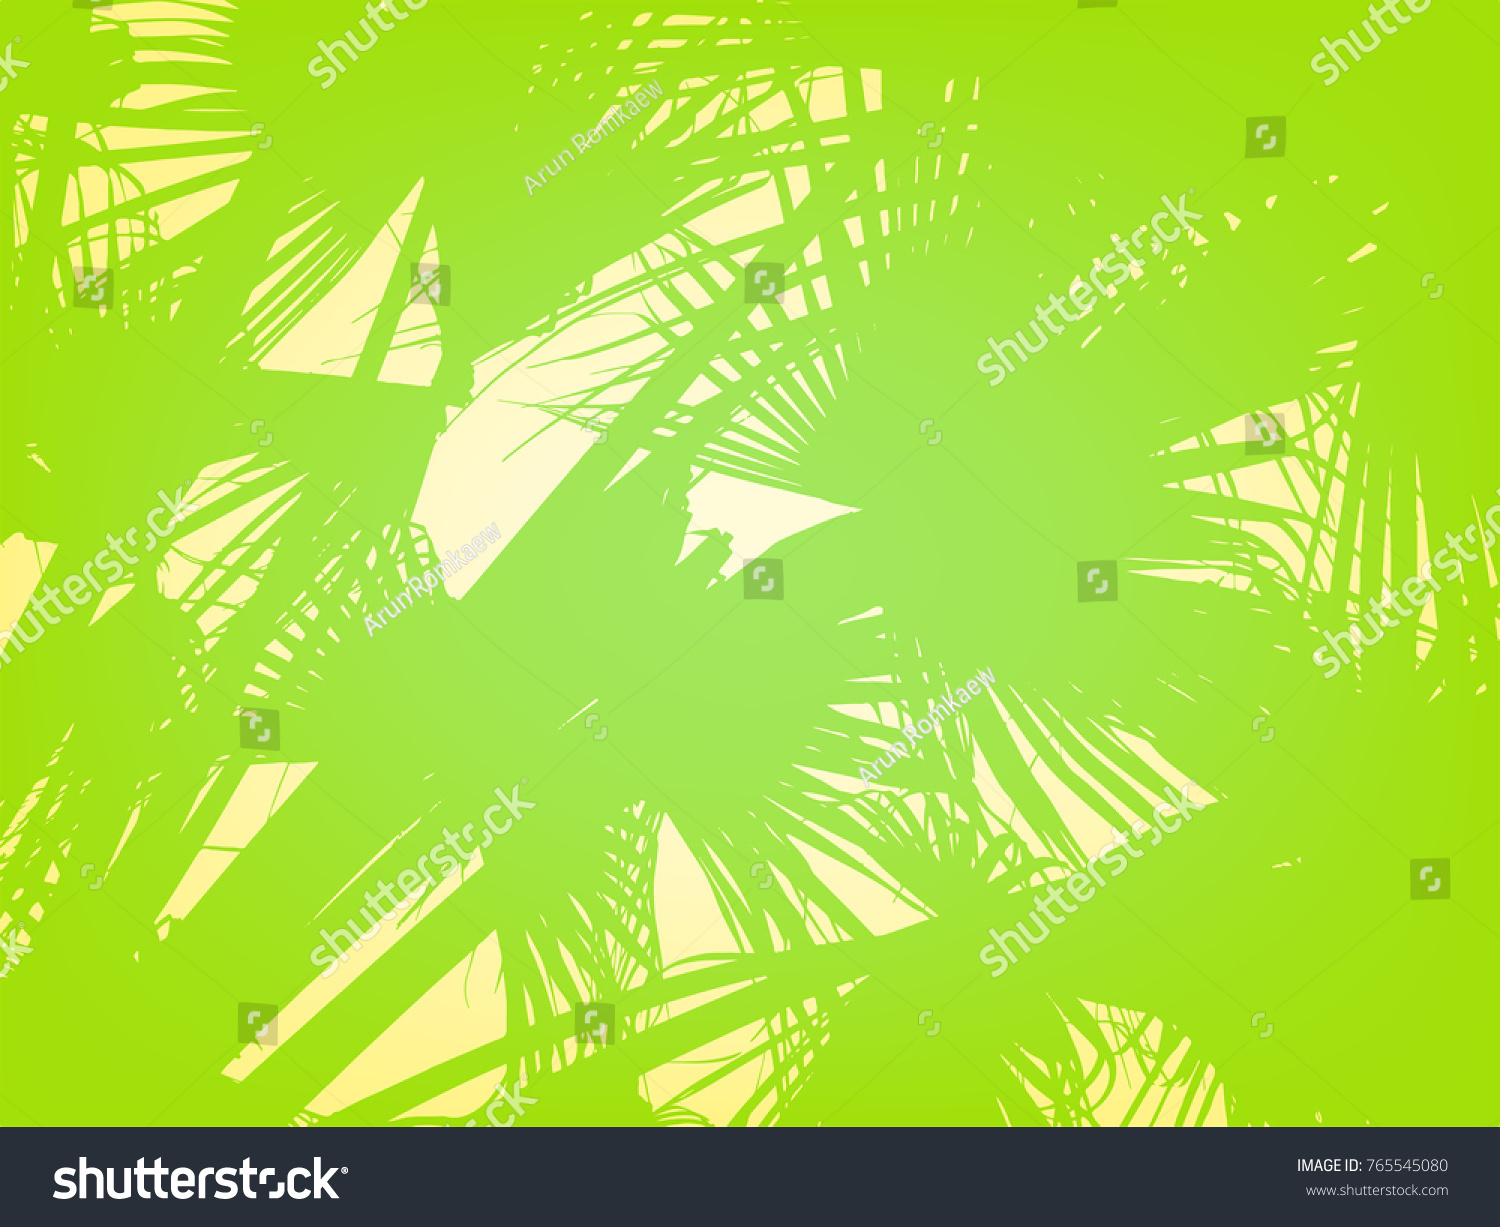 Vector Illustration Colorful Palm Leaves Branch Stock Vector ...